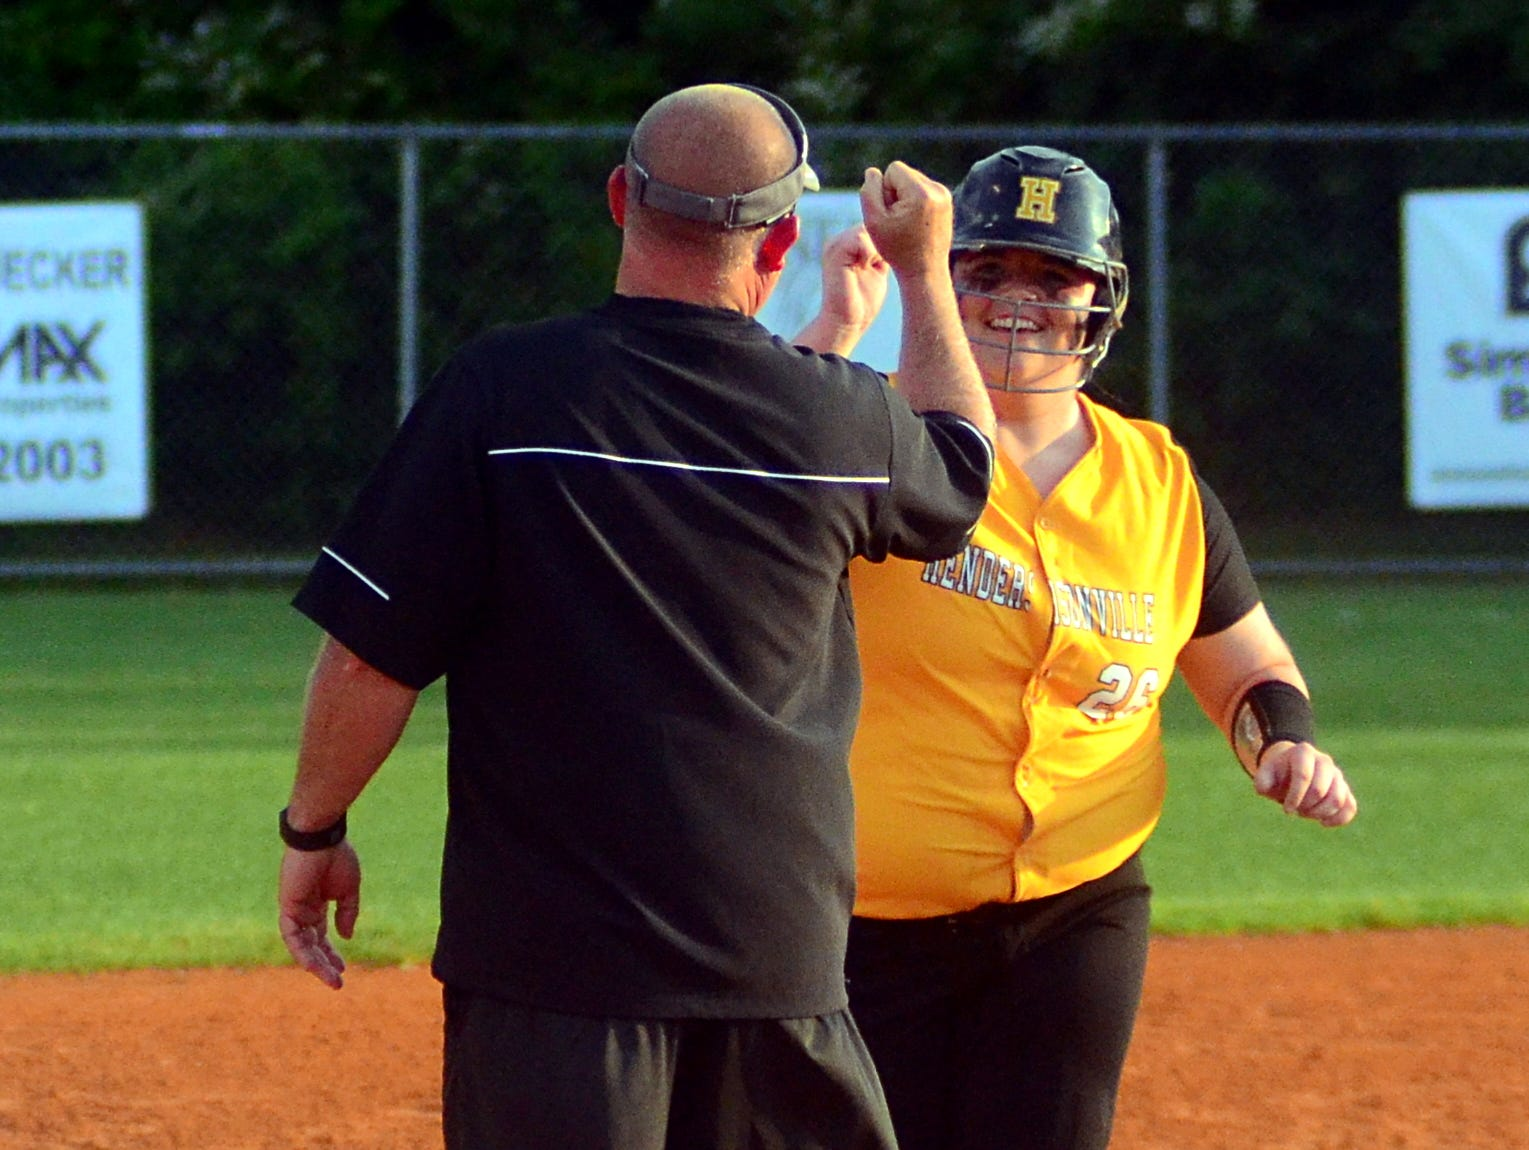 Hendersonville High senior Carley Carlisle is congratulated by head coach Jeff Serbin after her second home run in Tuesday's 5-3 victory over Lebanon in the District 9-AAA Tournament winners bracket semifinals.